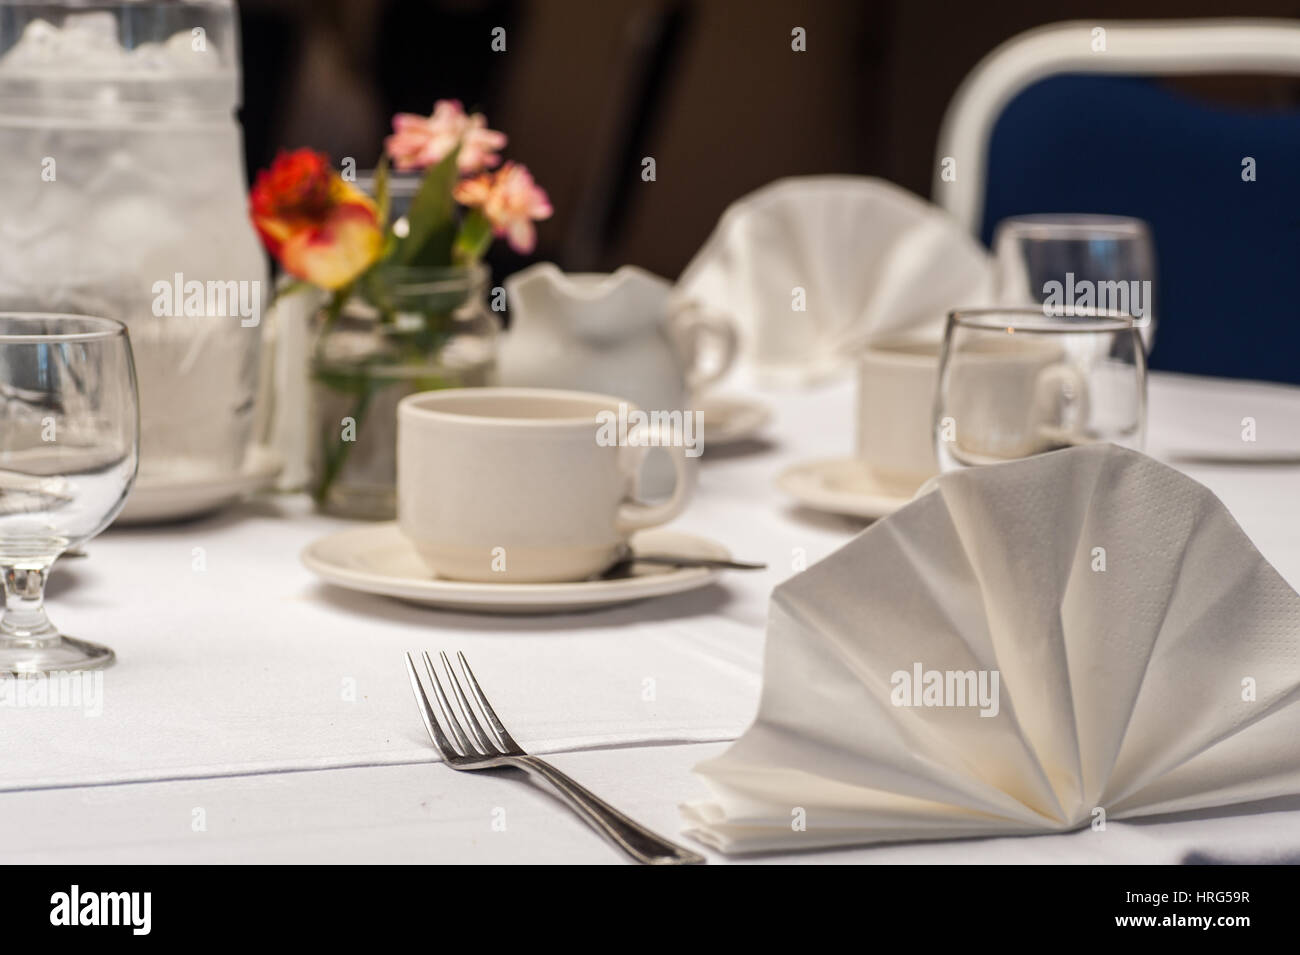 Place setting at a table for an event in a hotel. Stock Photo